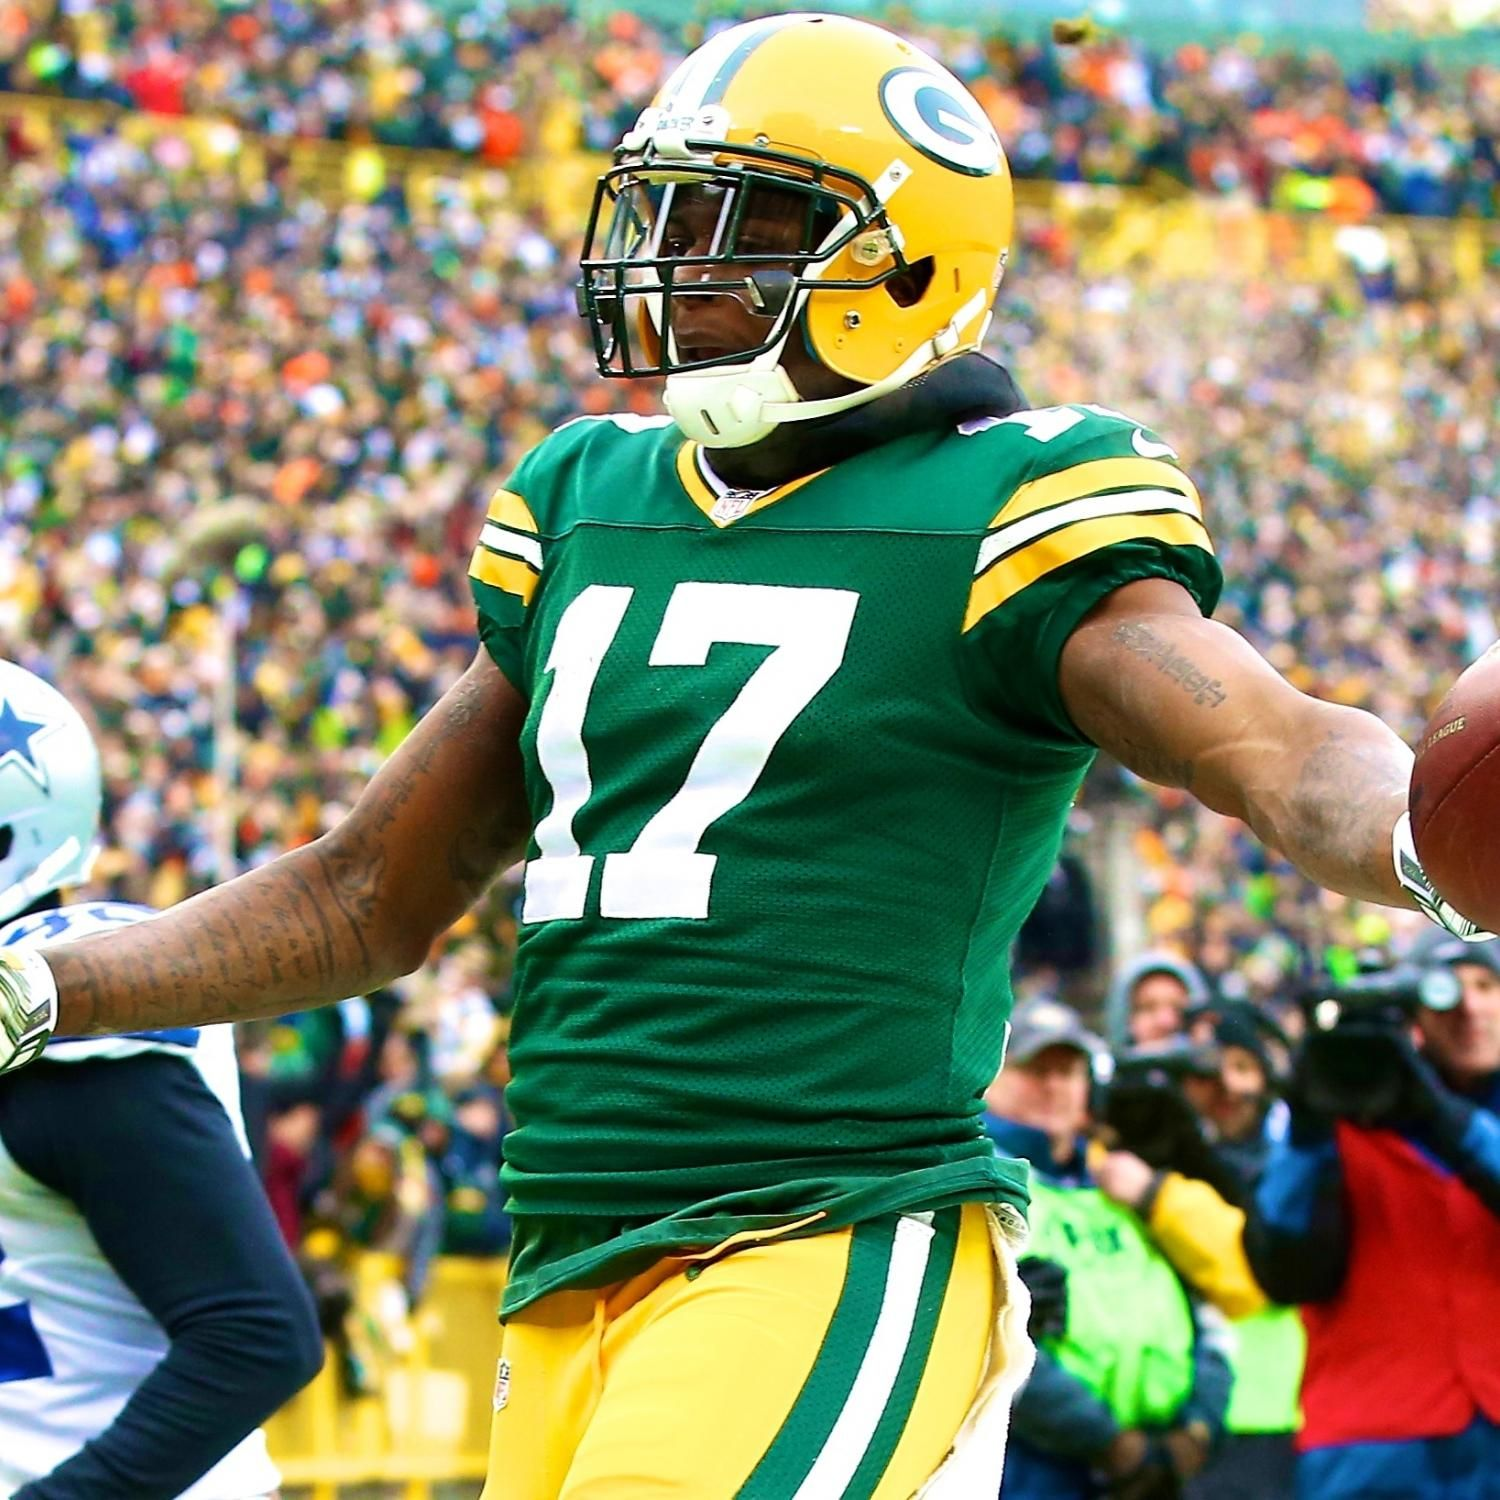 Cowboys Vs Packers Score And Twitter Reaction From 2015 Nfl Playoffs Packers Green Bay Packers Nfl Playoffs